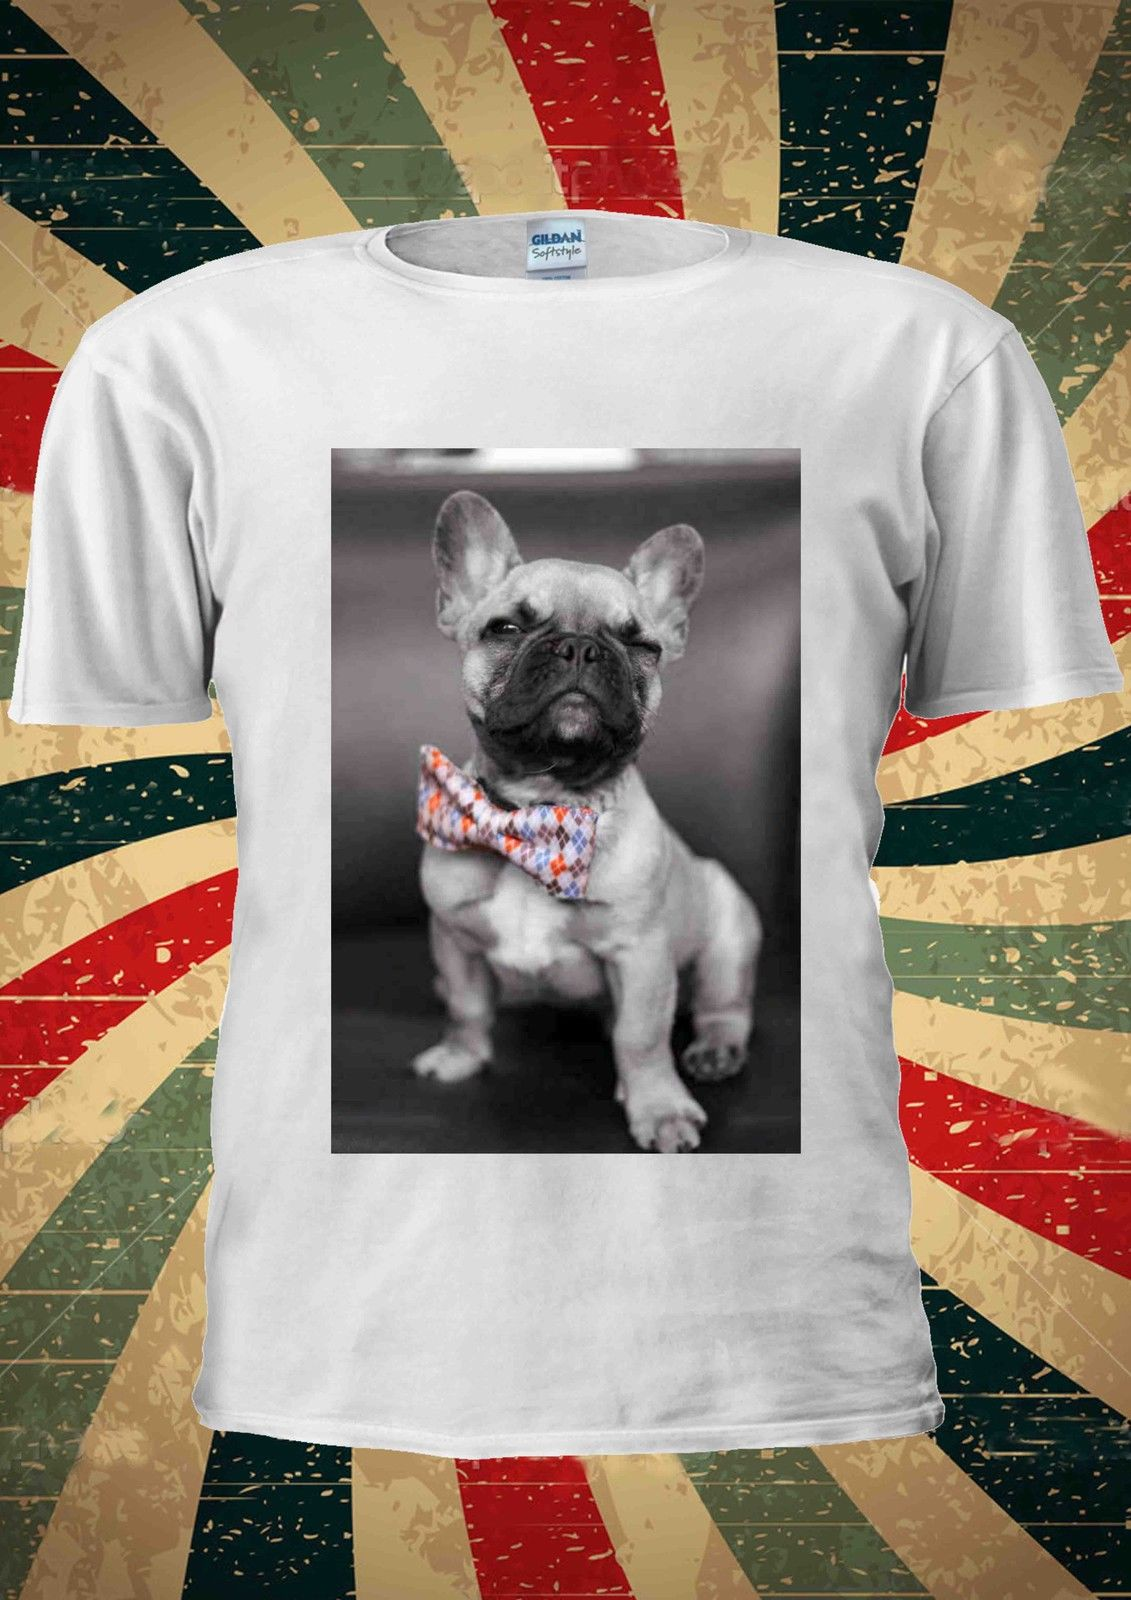 Dog With Bow-Tie Pug Life Tumblr Fashion T Shirt Men Women Unisex 1080 Cheap wholesale tees,100% Cotton For Man,T shirt printing